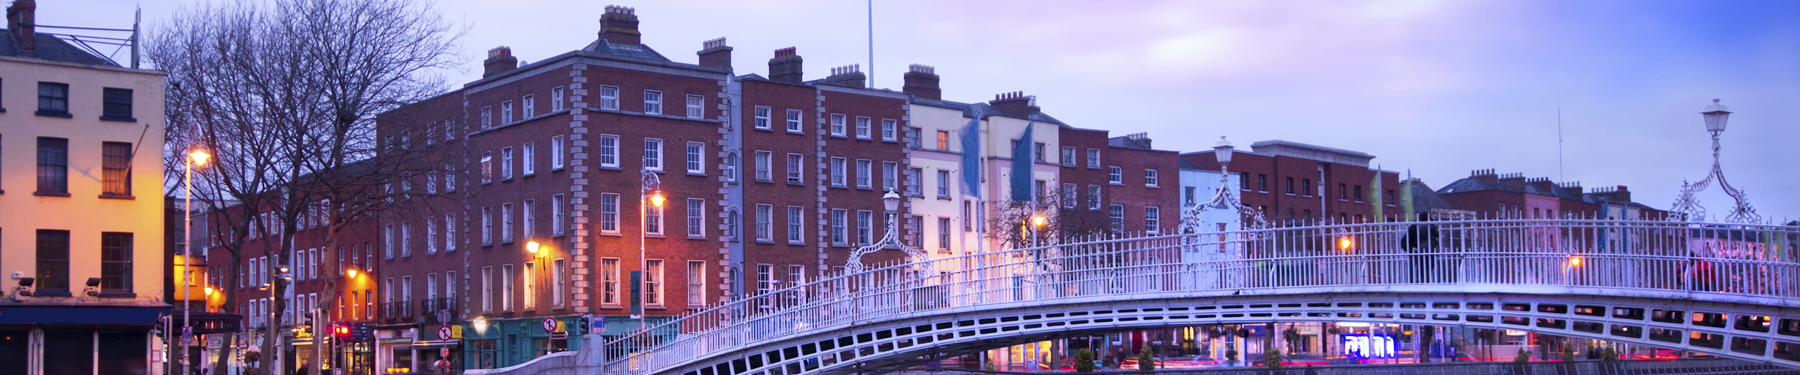 Dublin City Rentals and self catering holiday homes Dublin